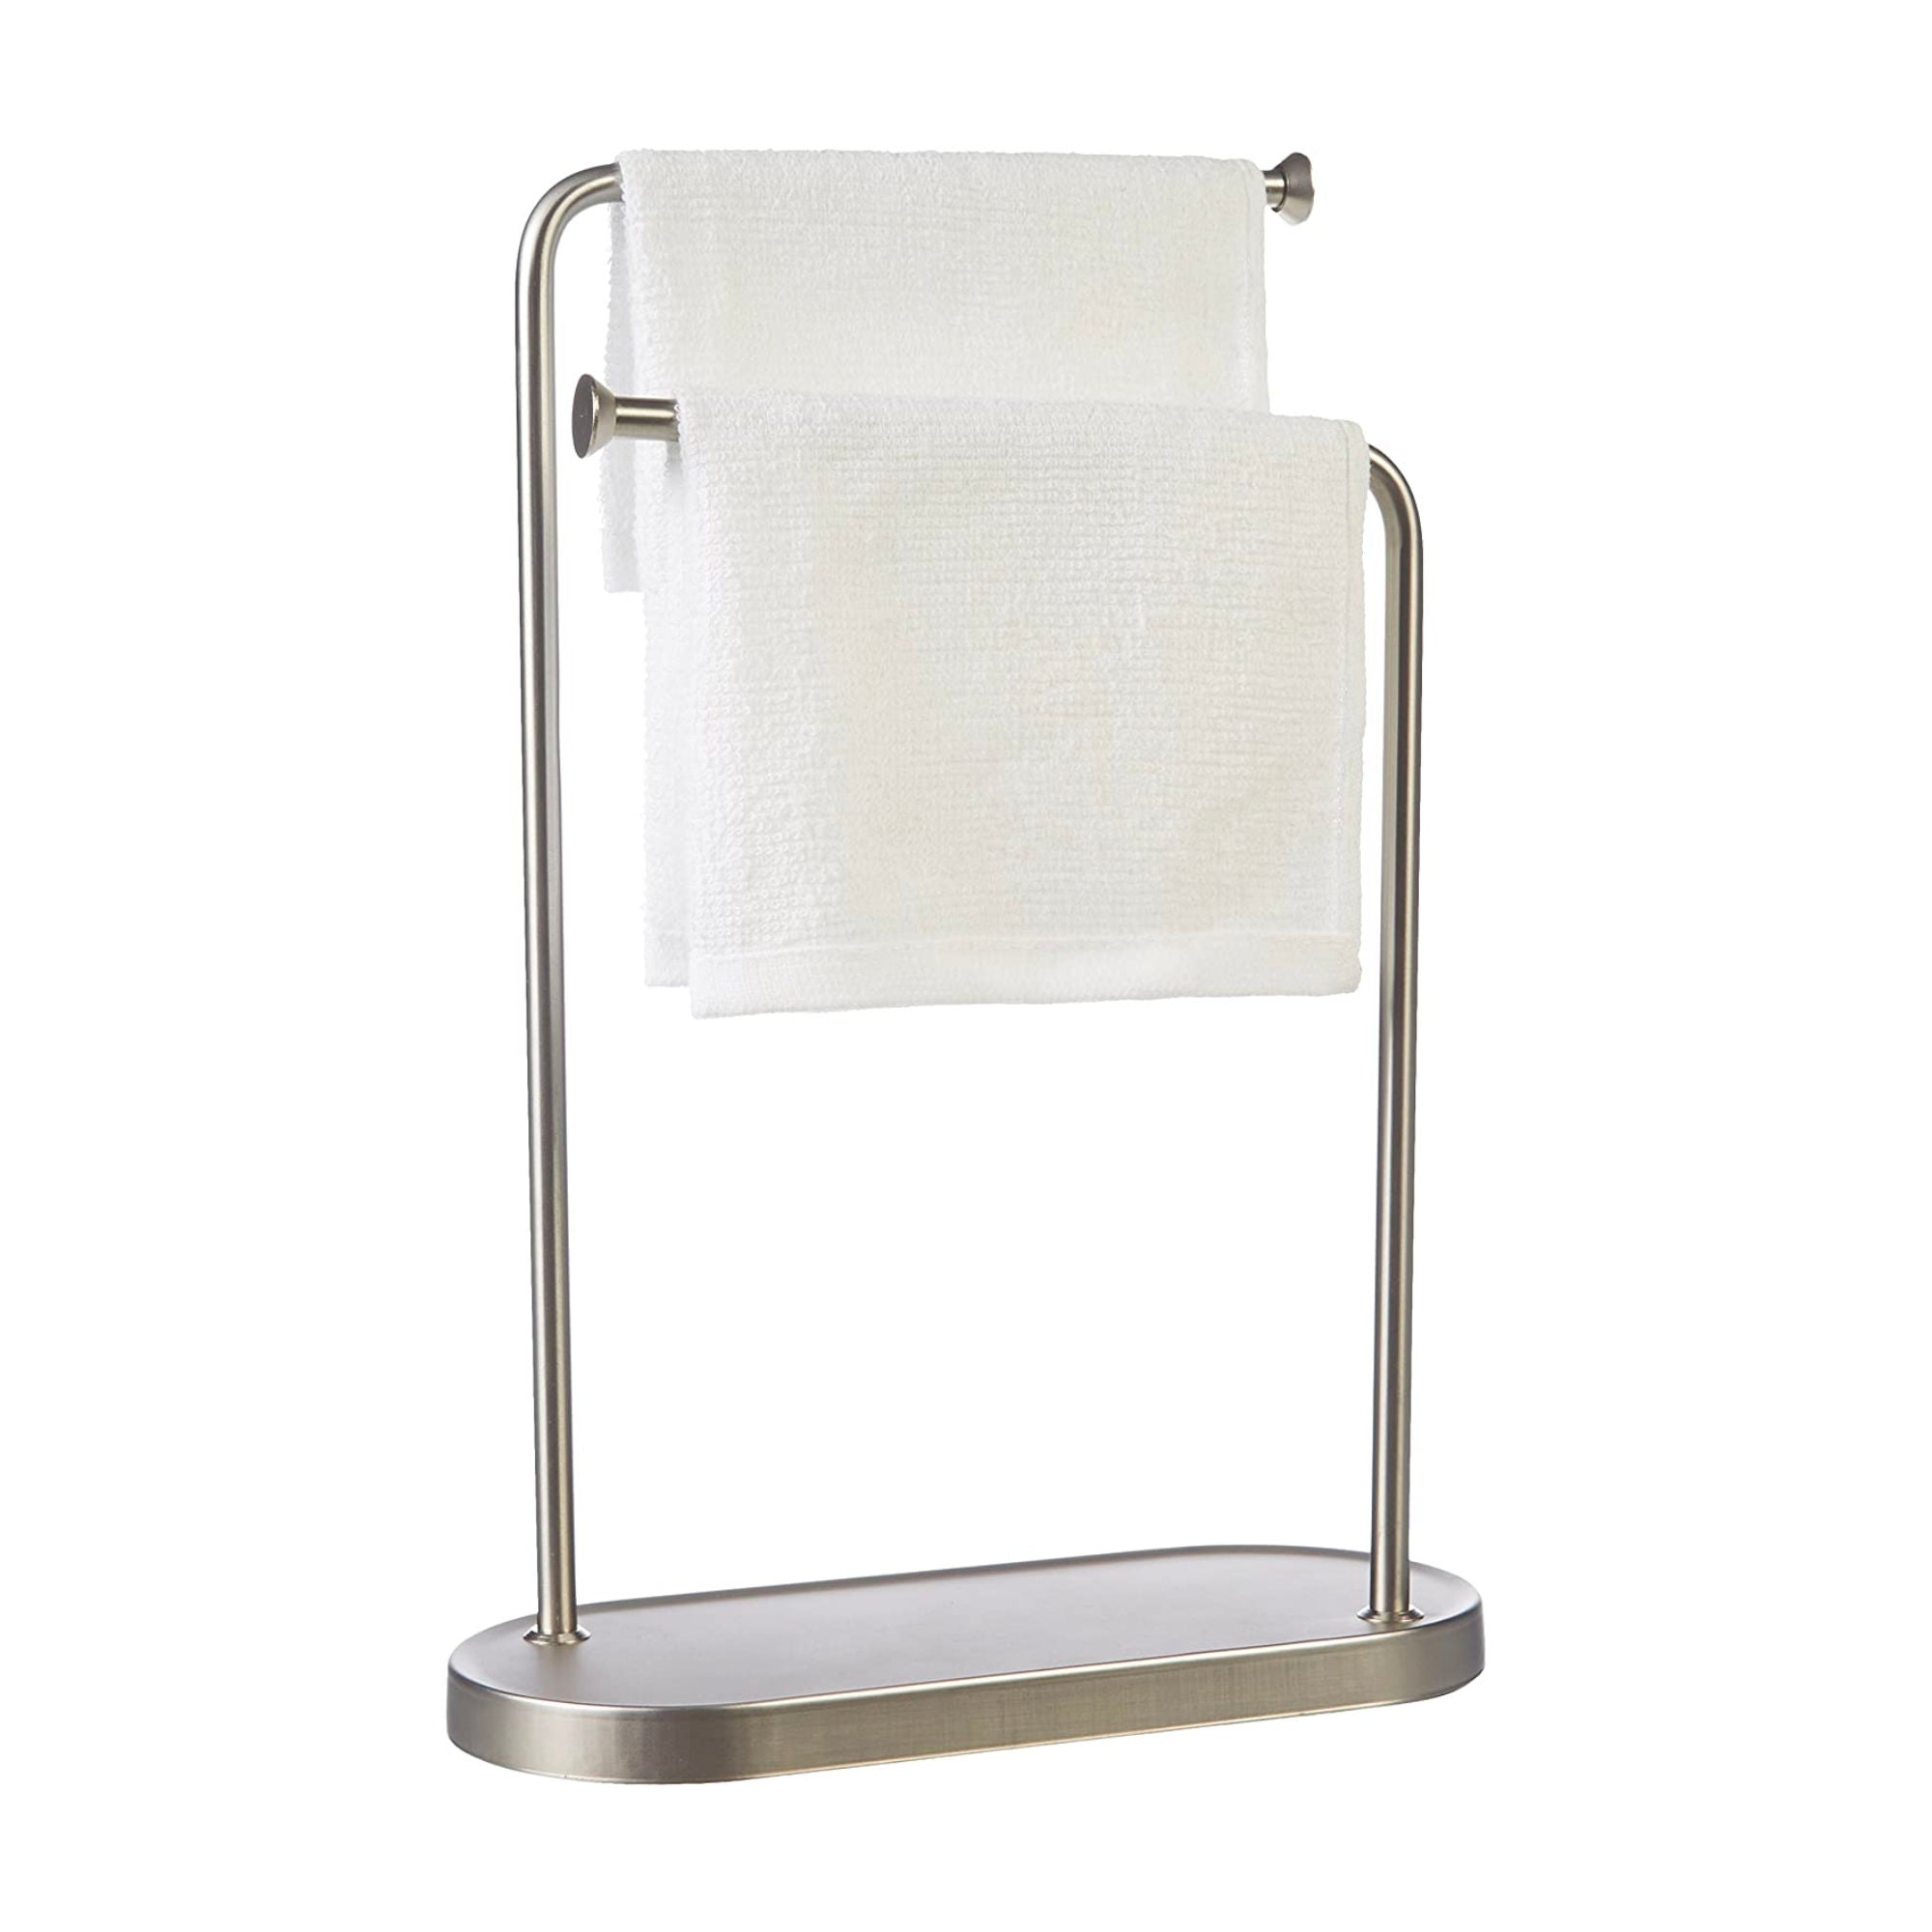 Umbra Double Hand Towel Holder , Nickel